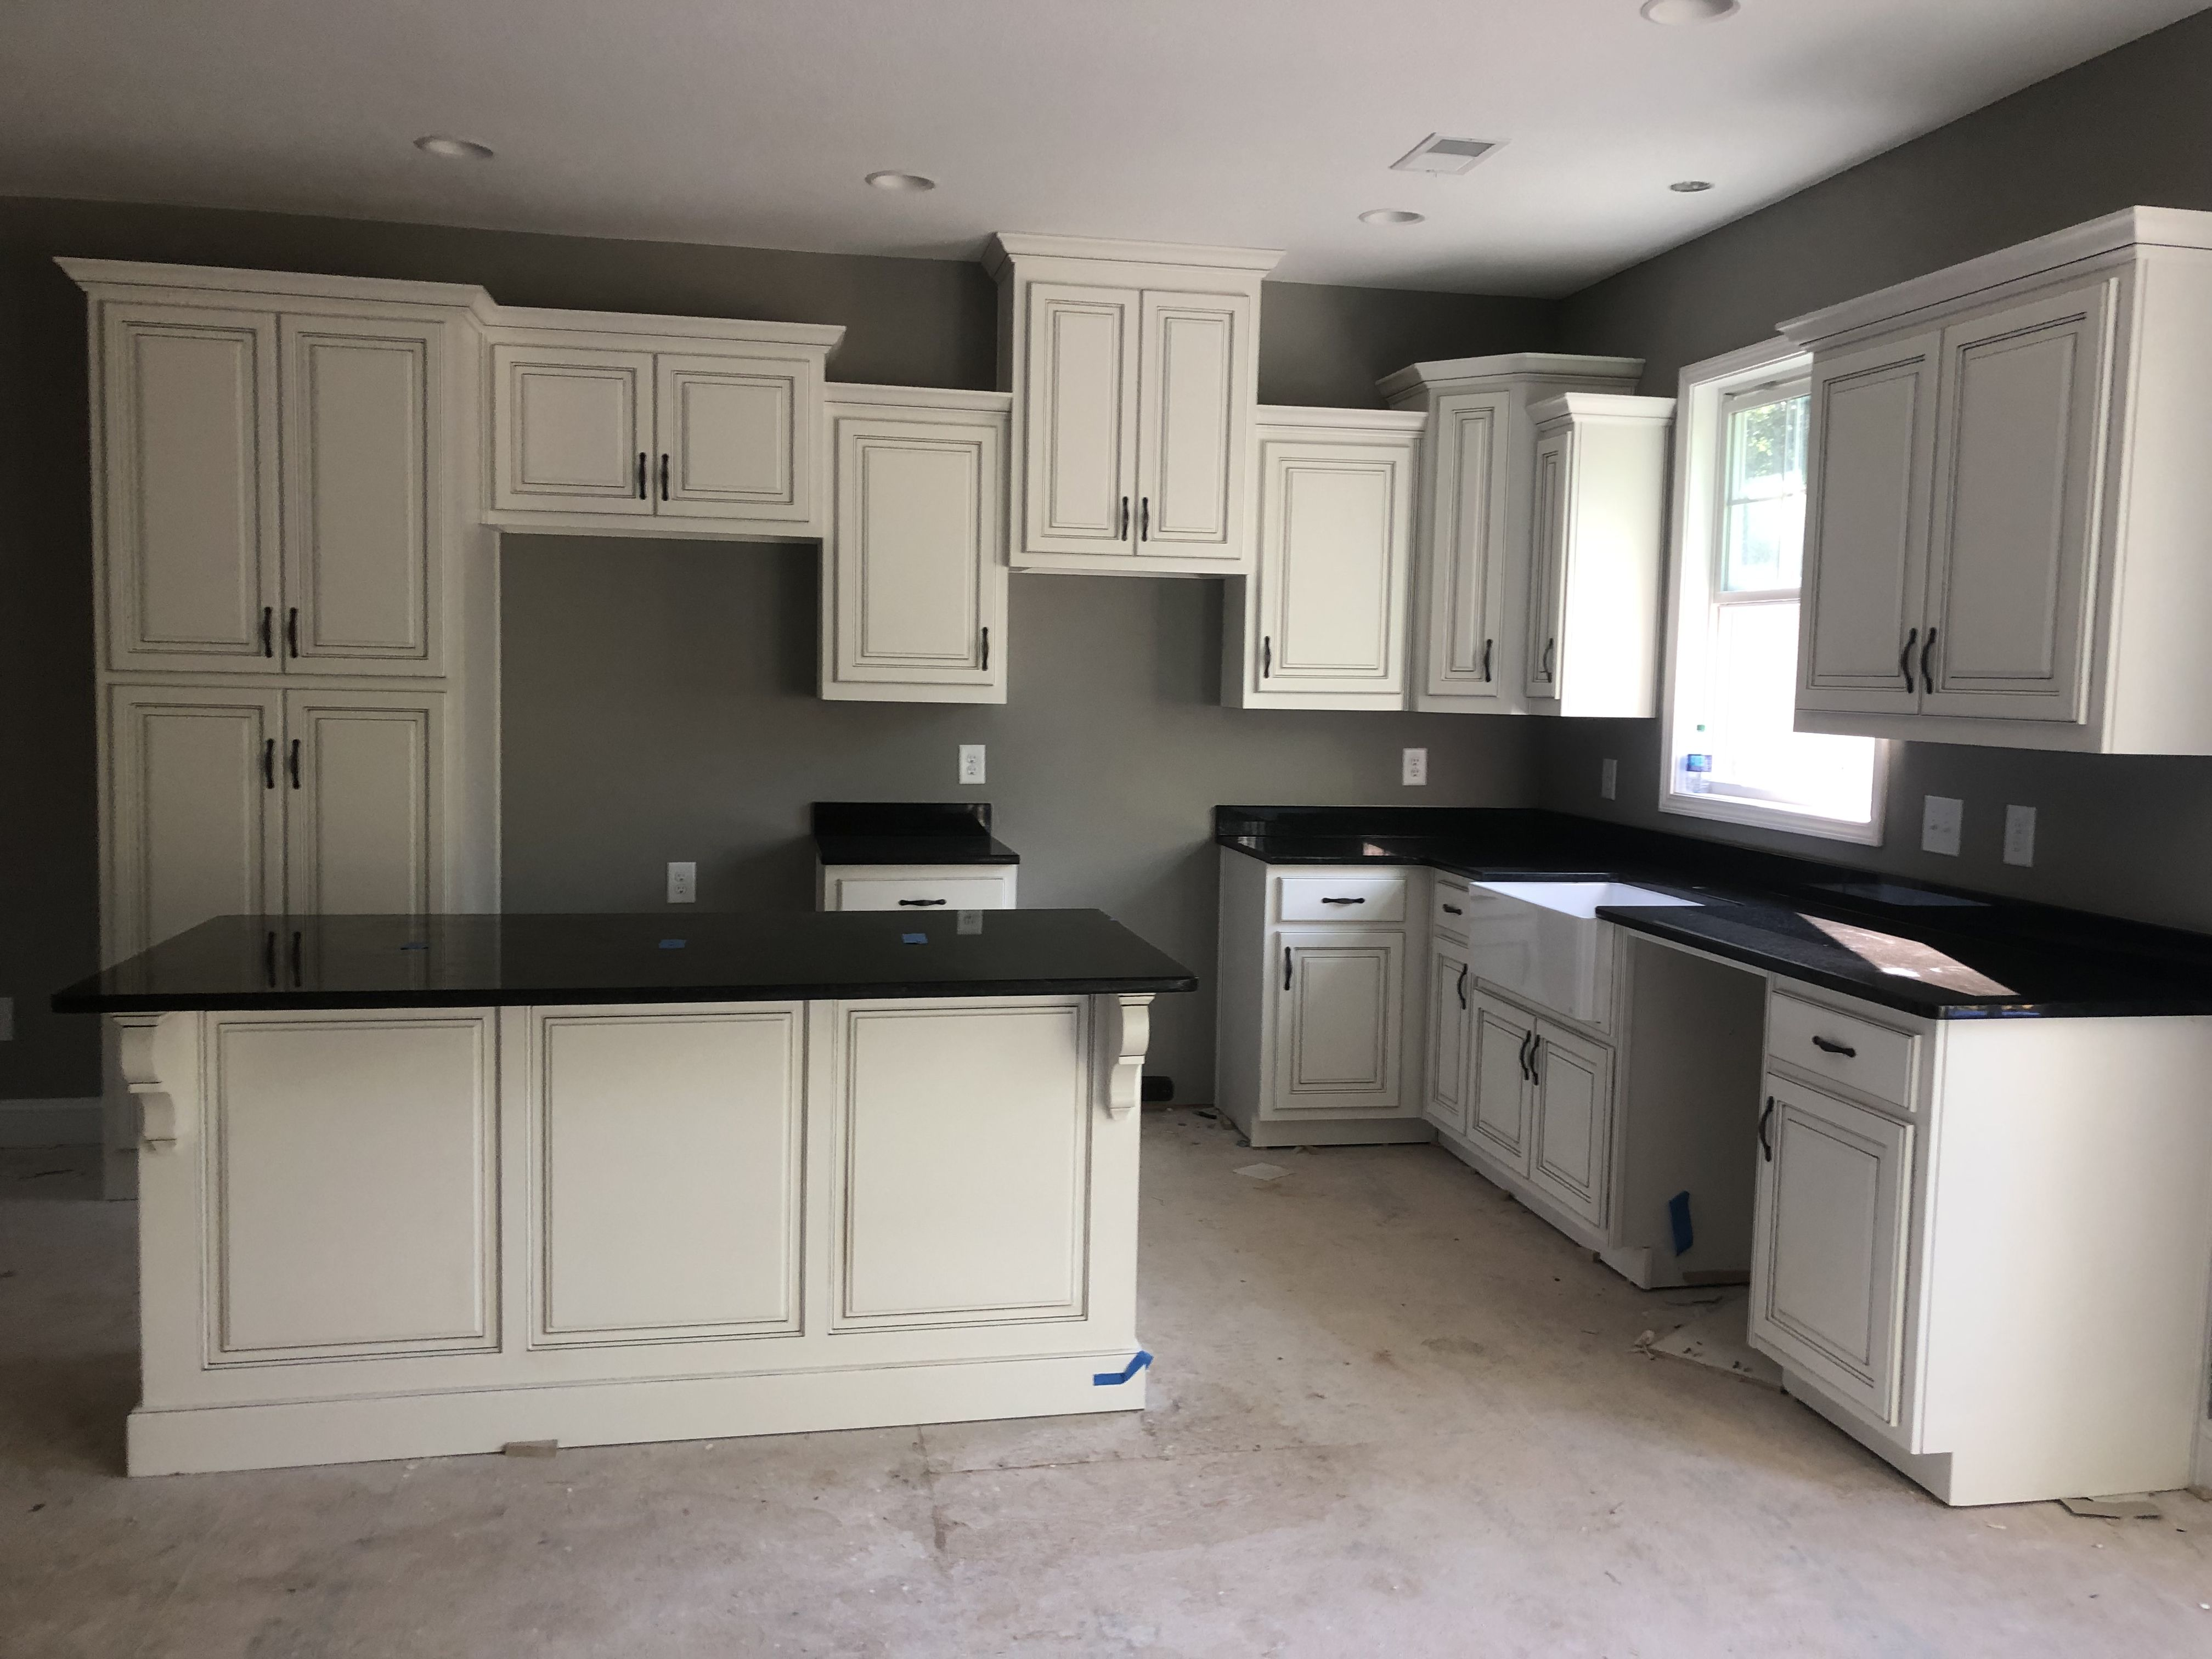 Distressed Kitchen Cabinets And Dorian Gray Walls Distressed Kitchen Kitchen Cabinets Distressed Kitchen Cabinets